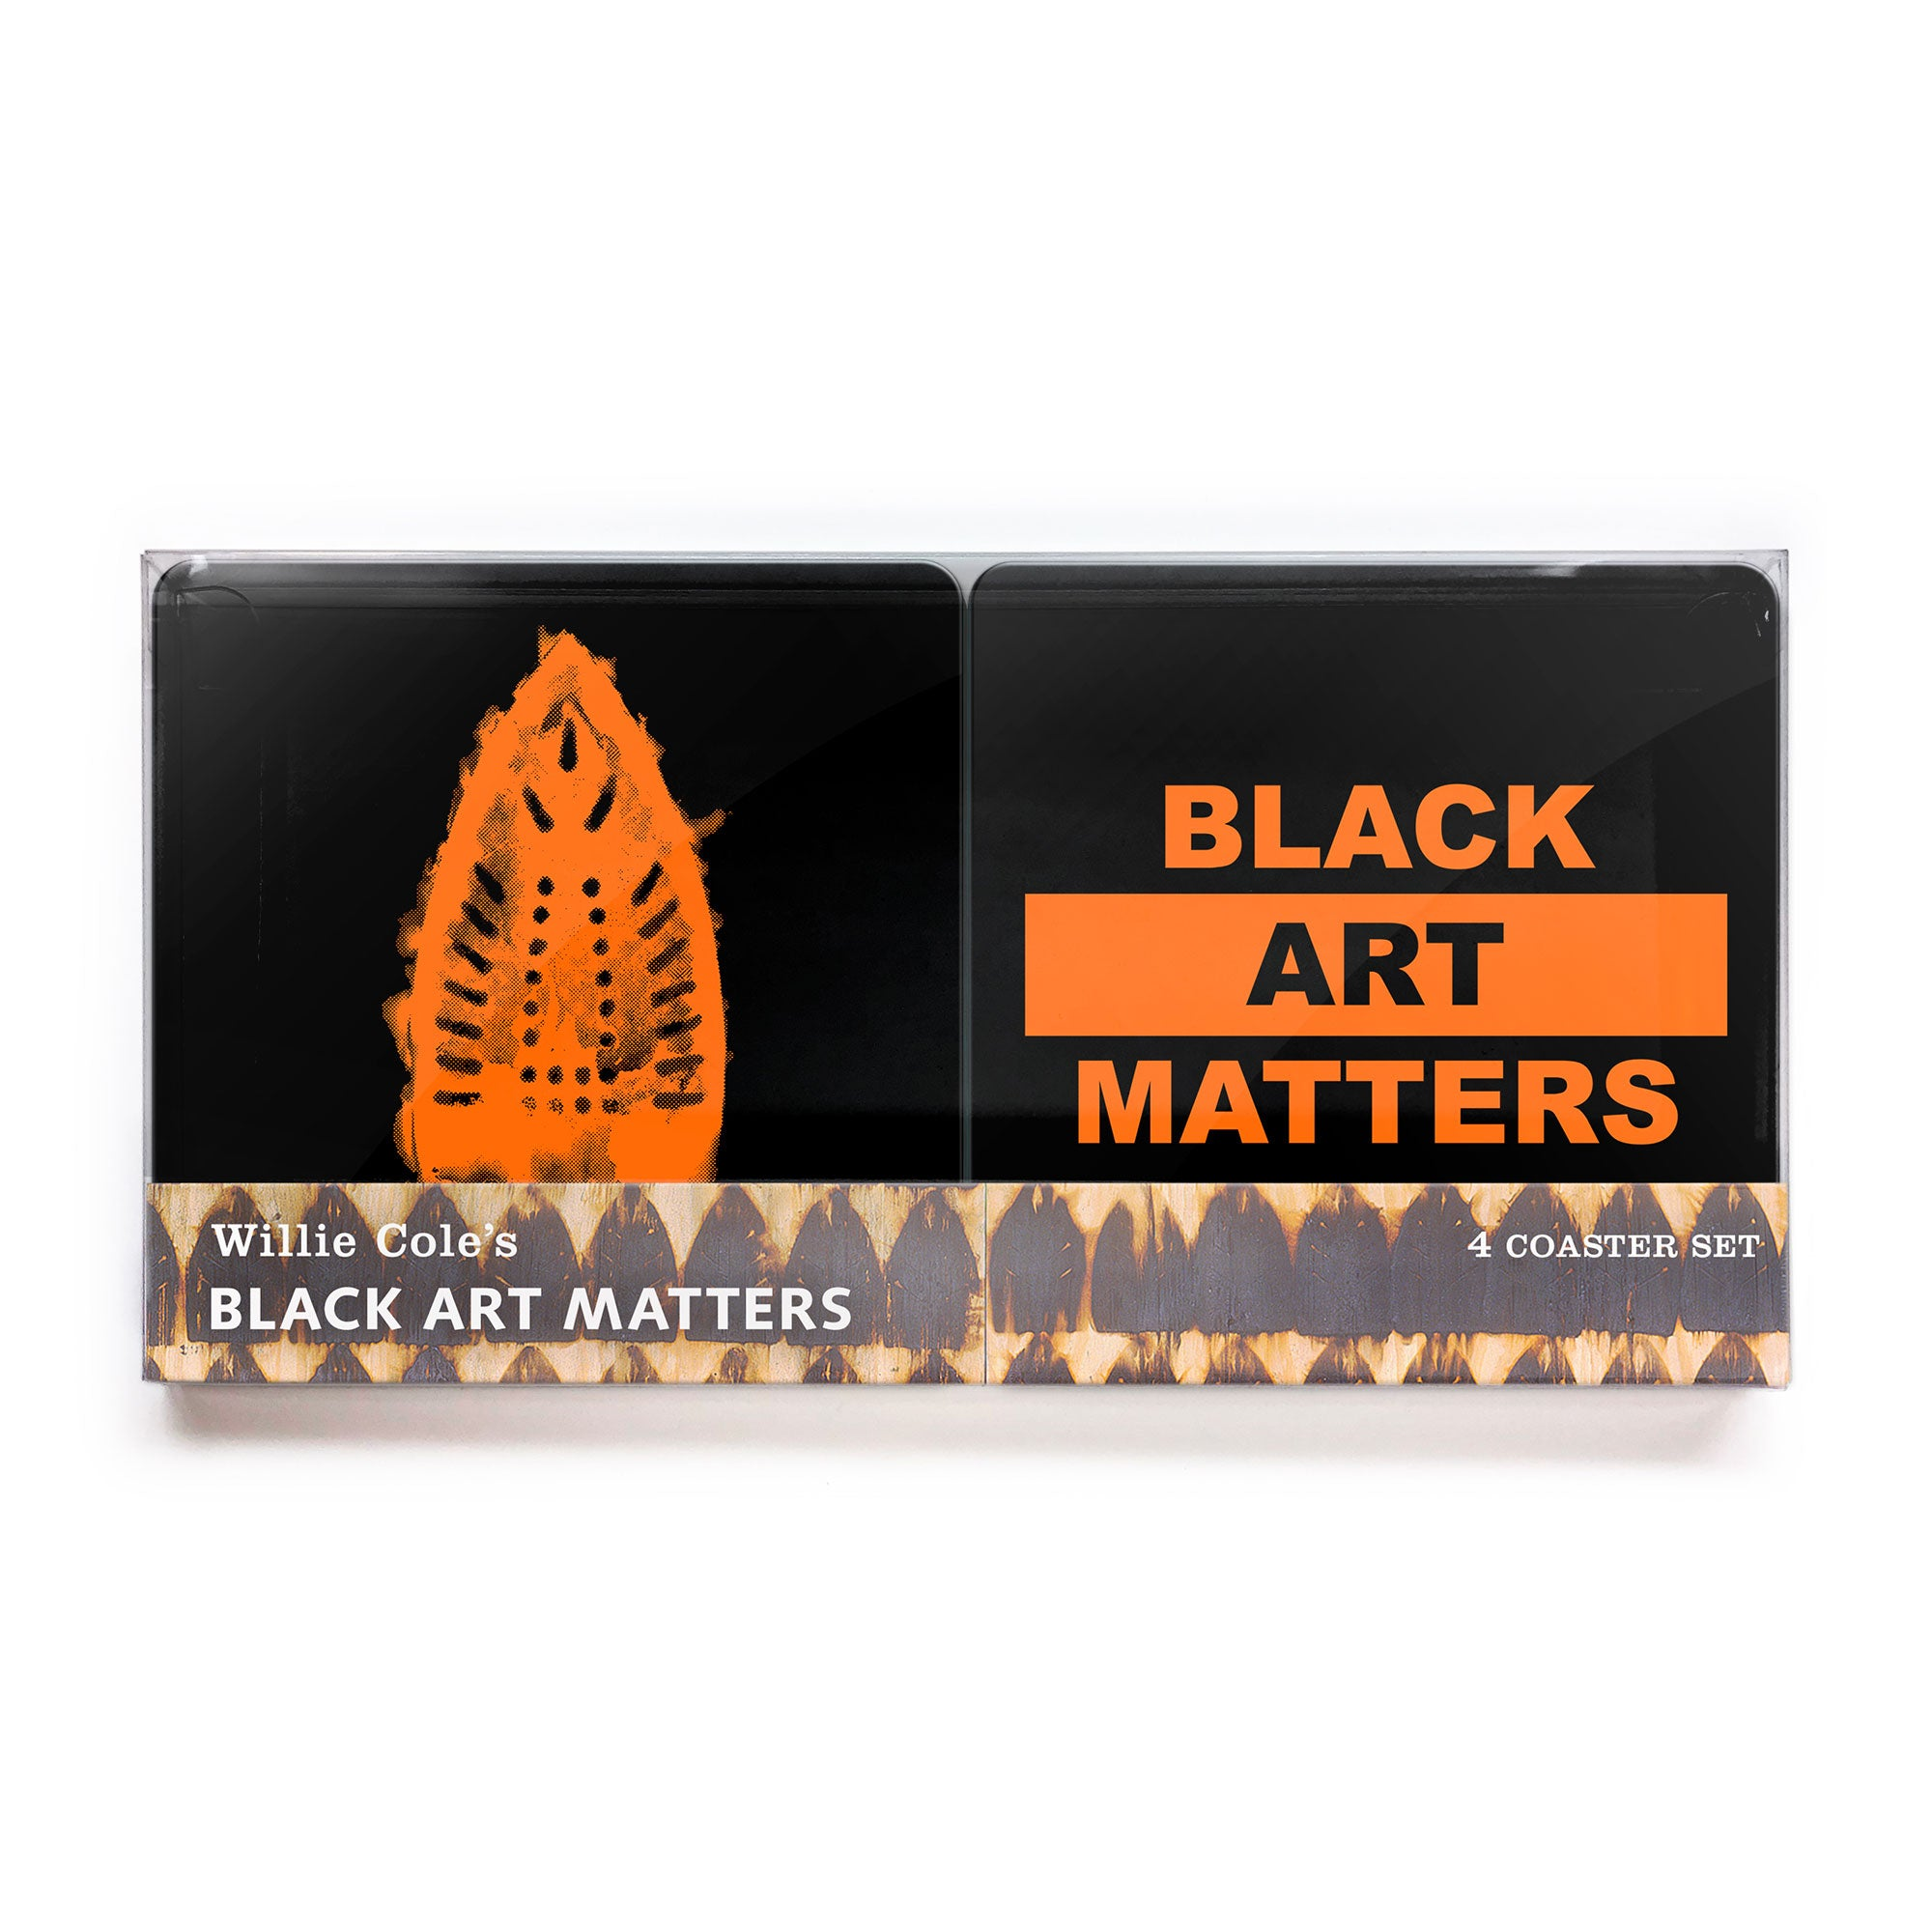 Willie Cole Black Art Matters Coaster 4-pack